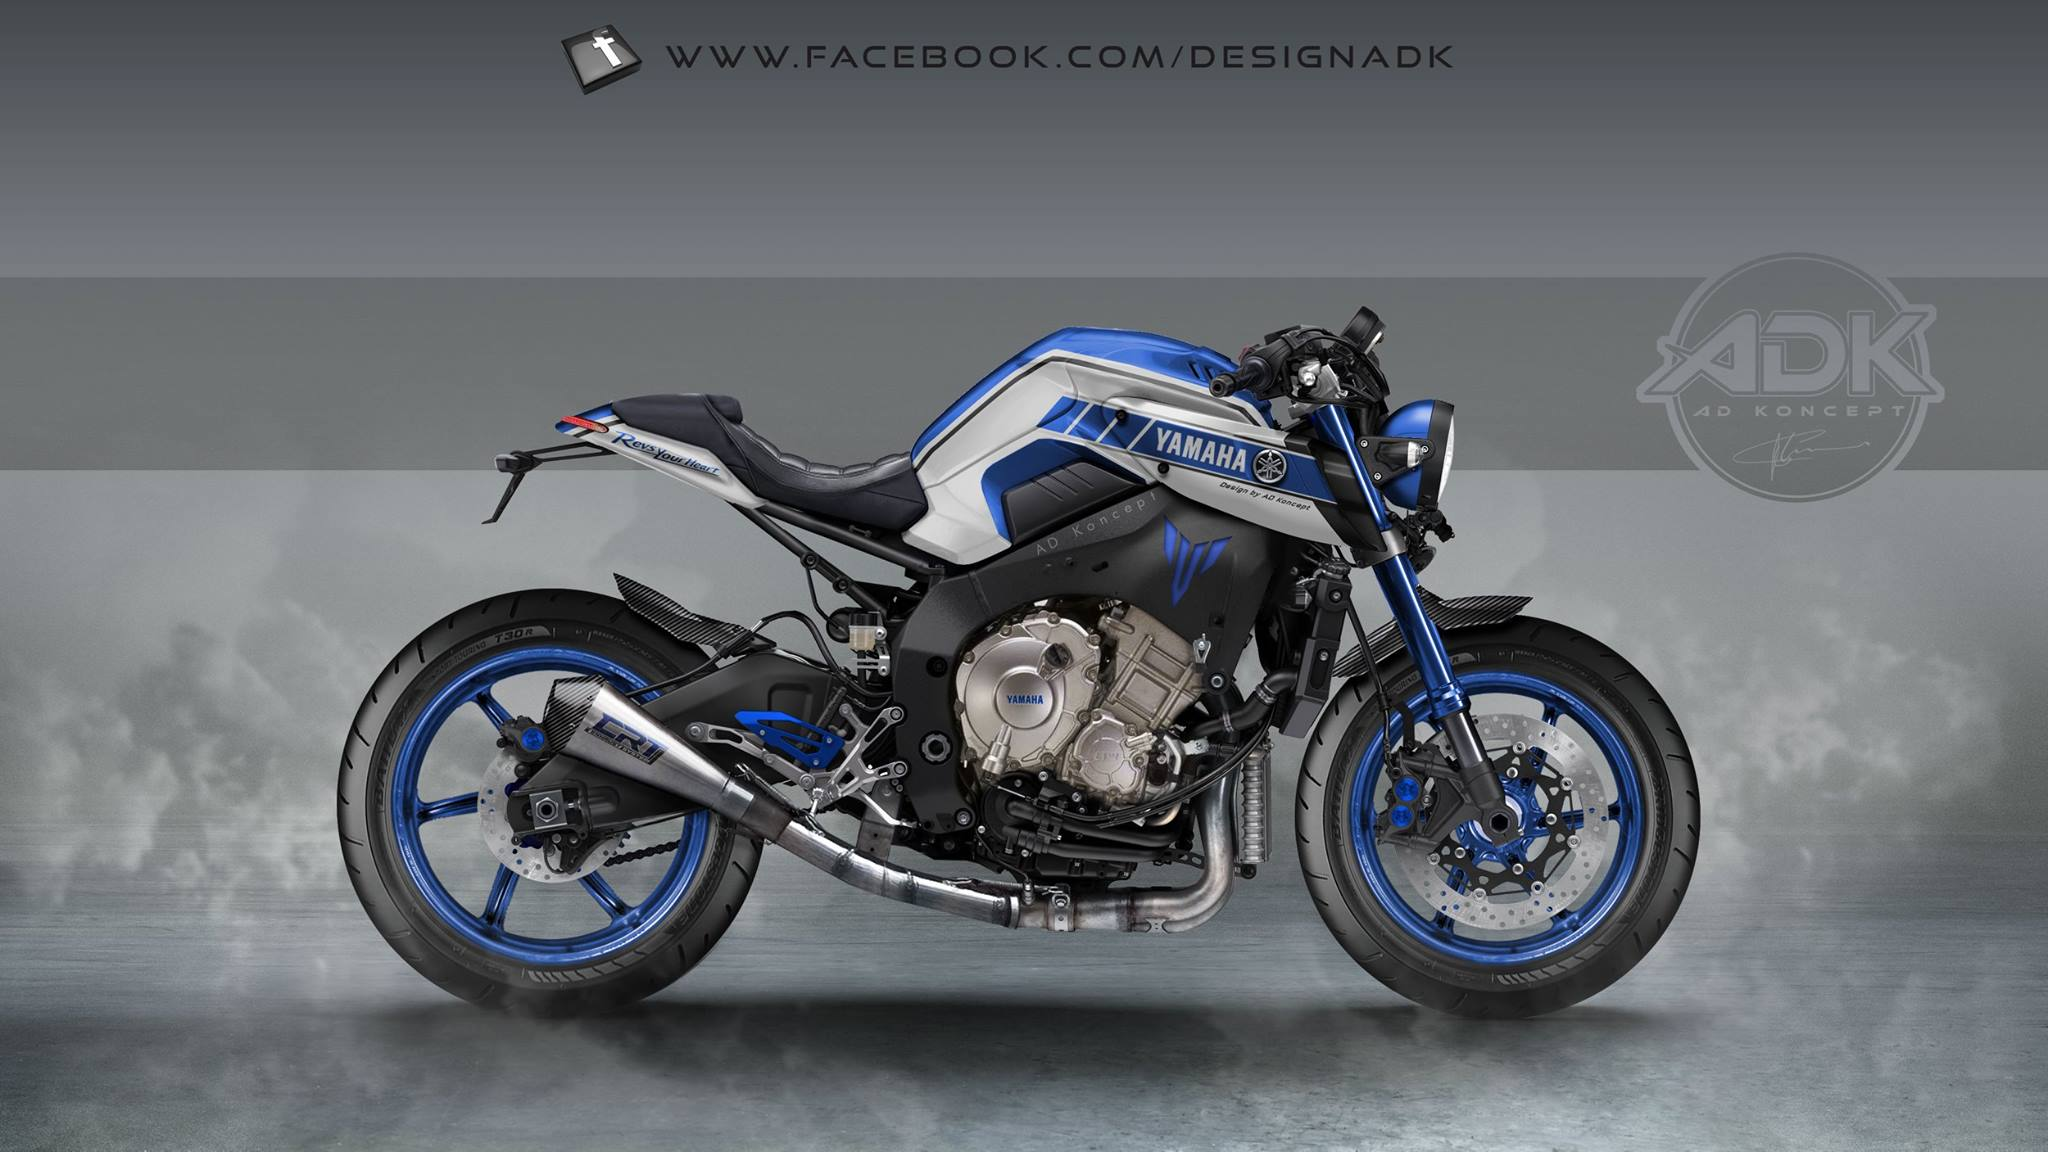 Mighty Car Mods Wallpaper Yamaha Mt 10 In Valentino Rossi Livery And More From Ad